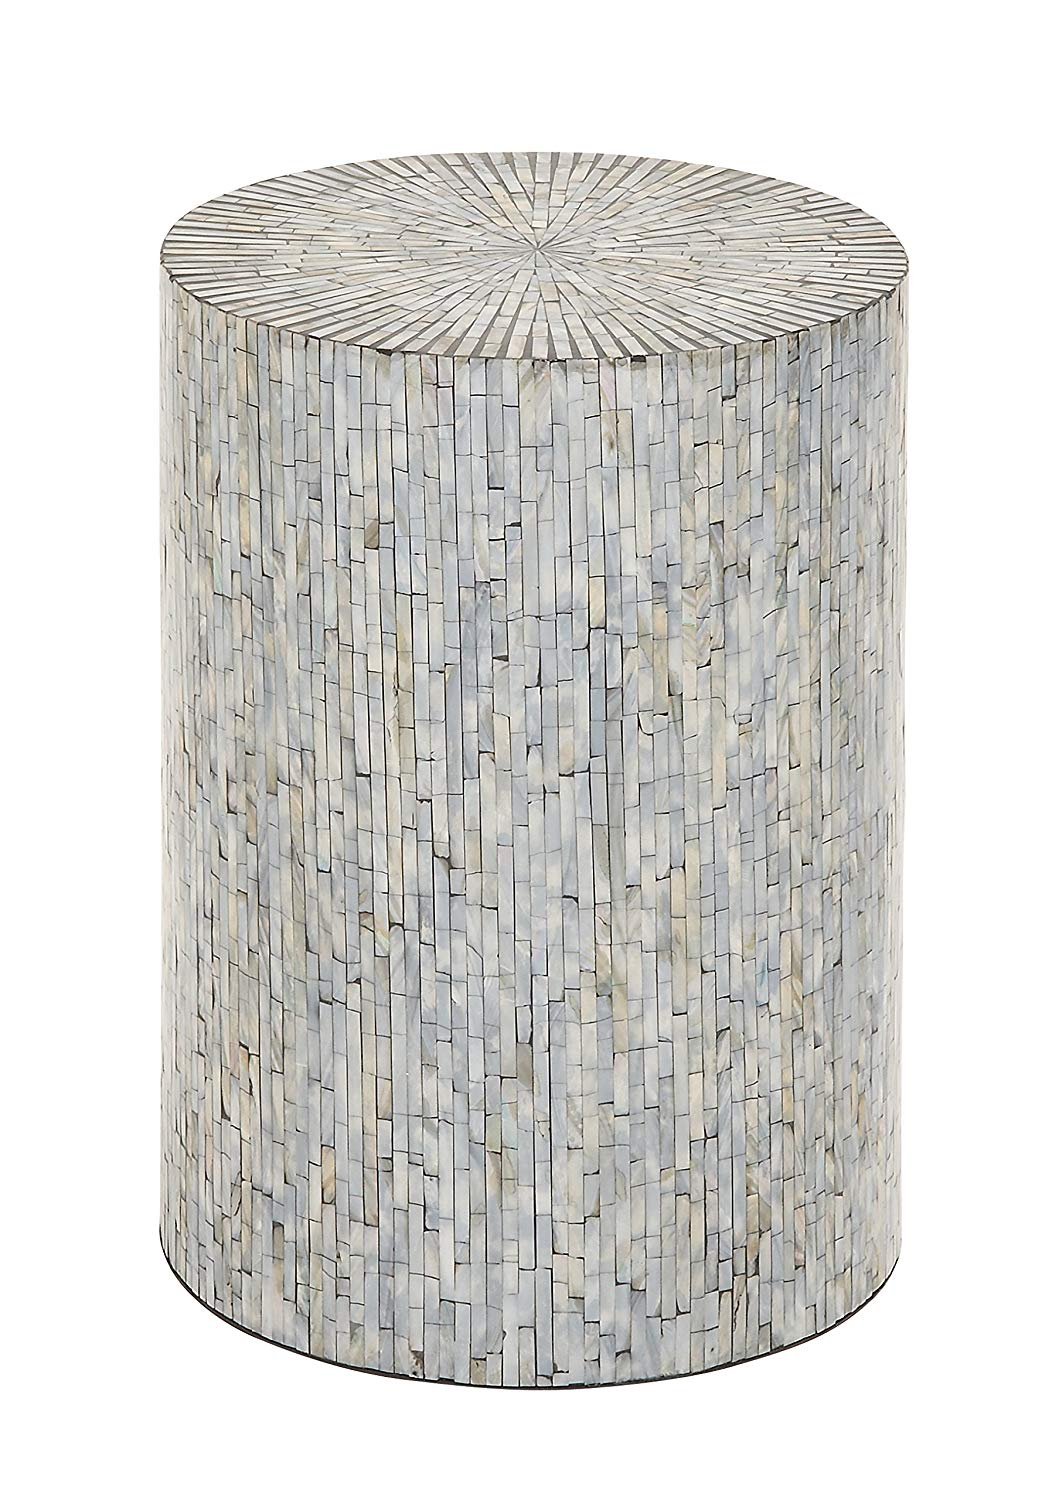 deco wood shell inlay accent table silver home kitchen metal side nautical bathroom lighting bridal shower basket ideas butler specialty console garden parasol base small wooden